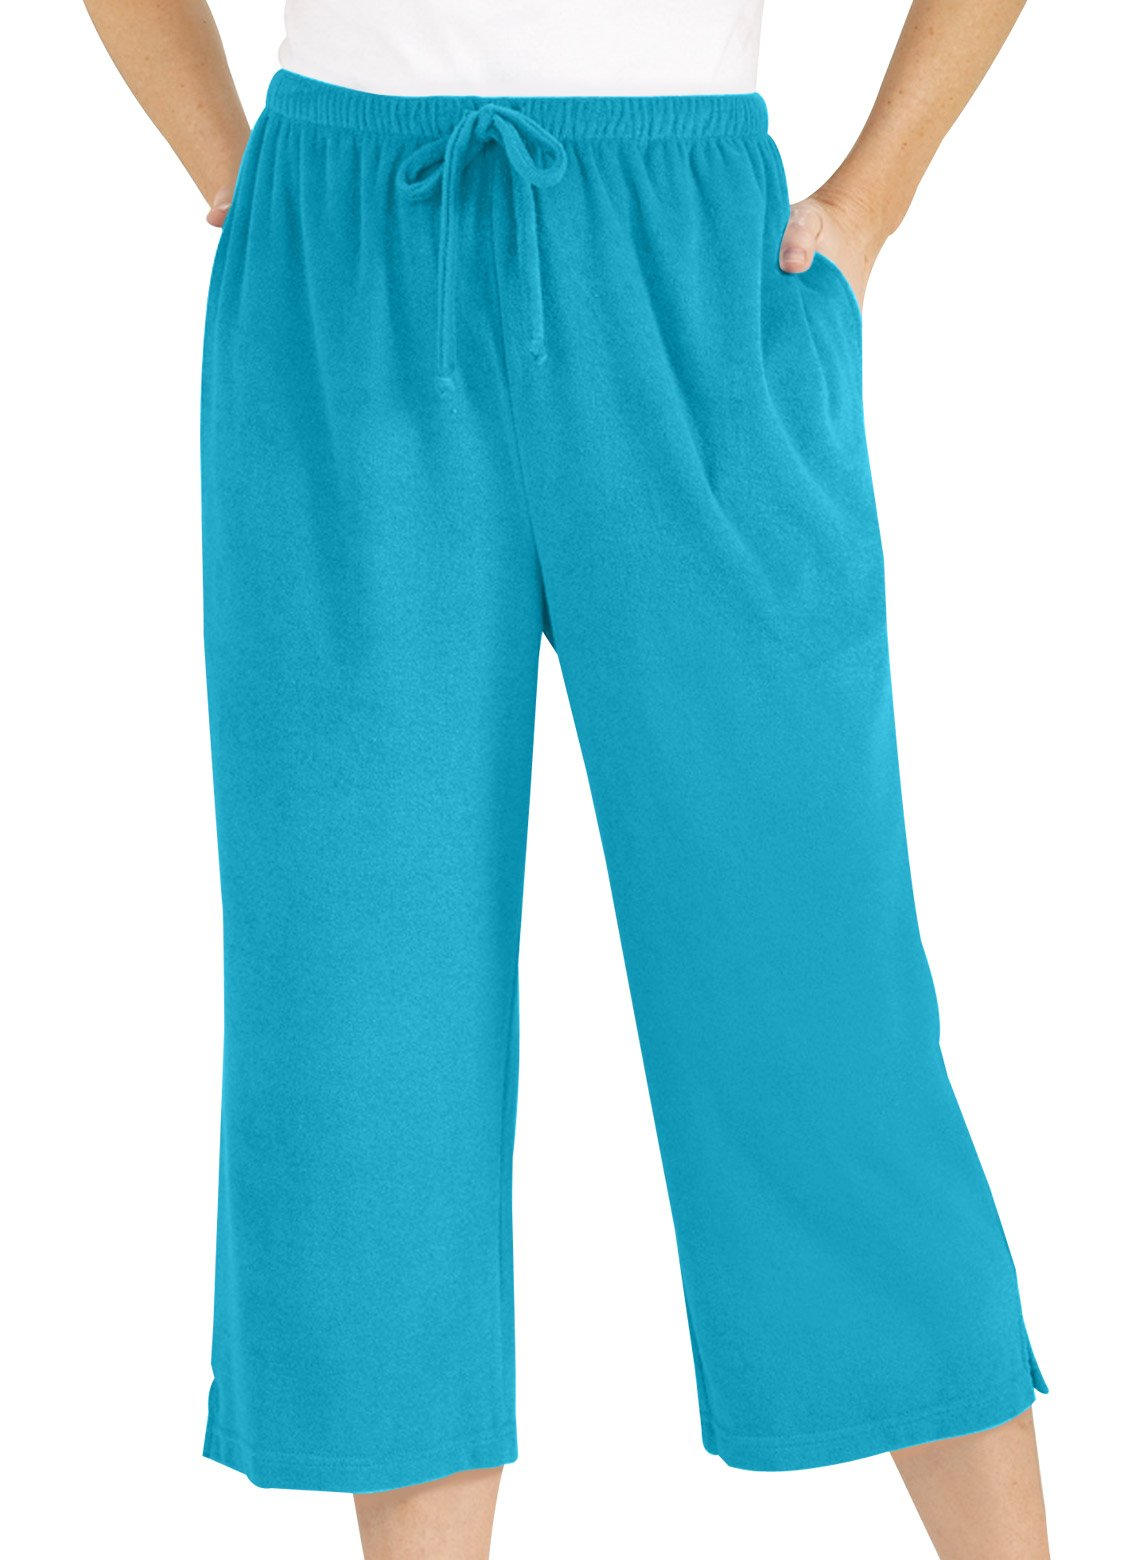 Carol Wright Gifts Terri Capri Pants, Turquoise, Size Medium Petite by Carol Wright Gifts (Image #1)